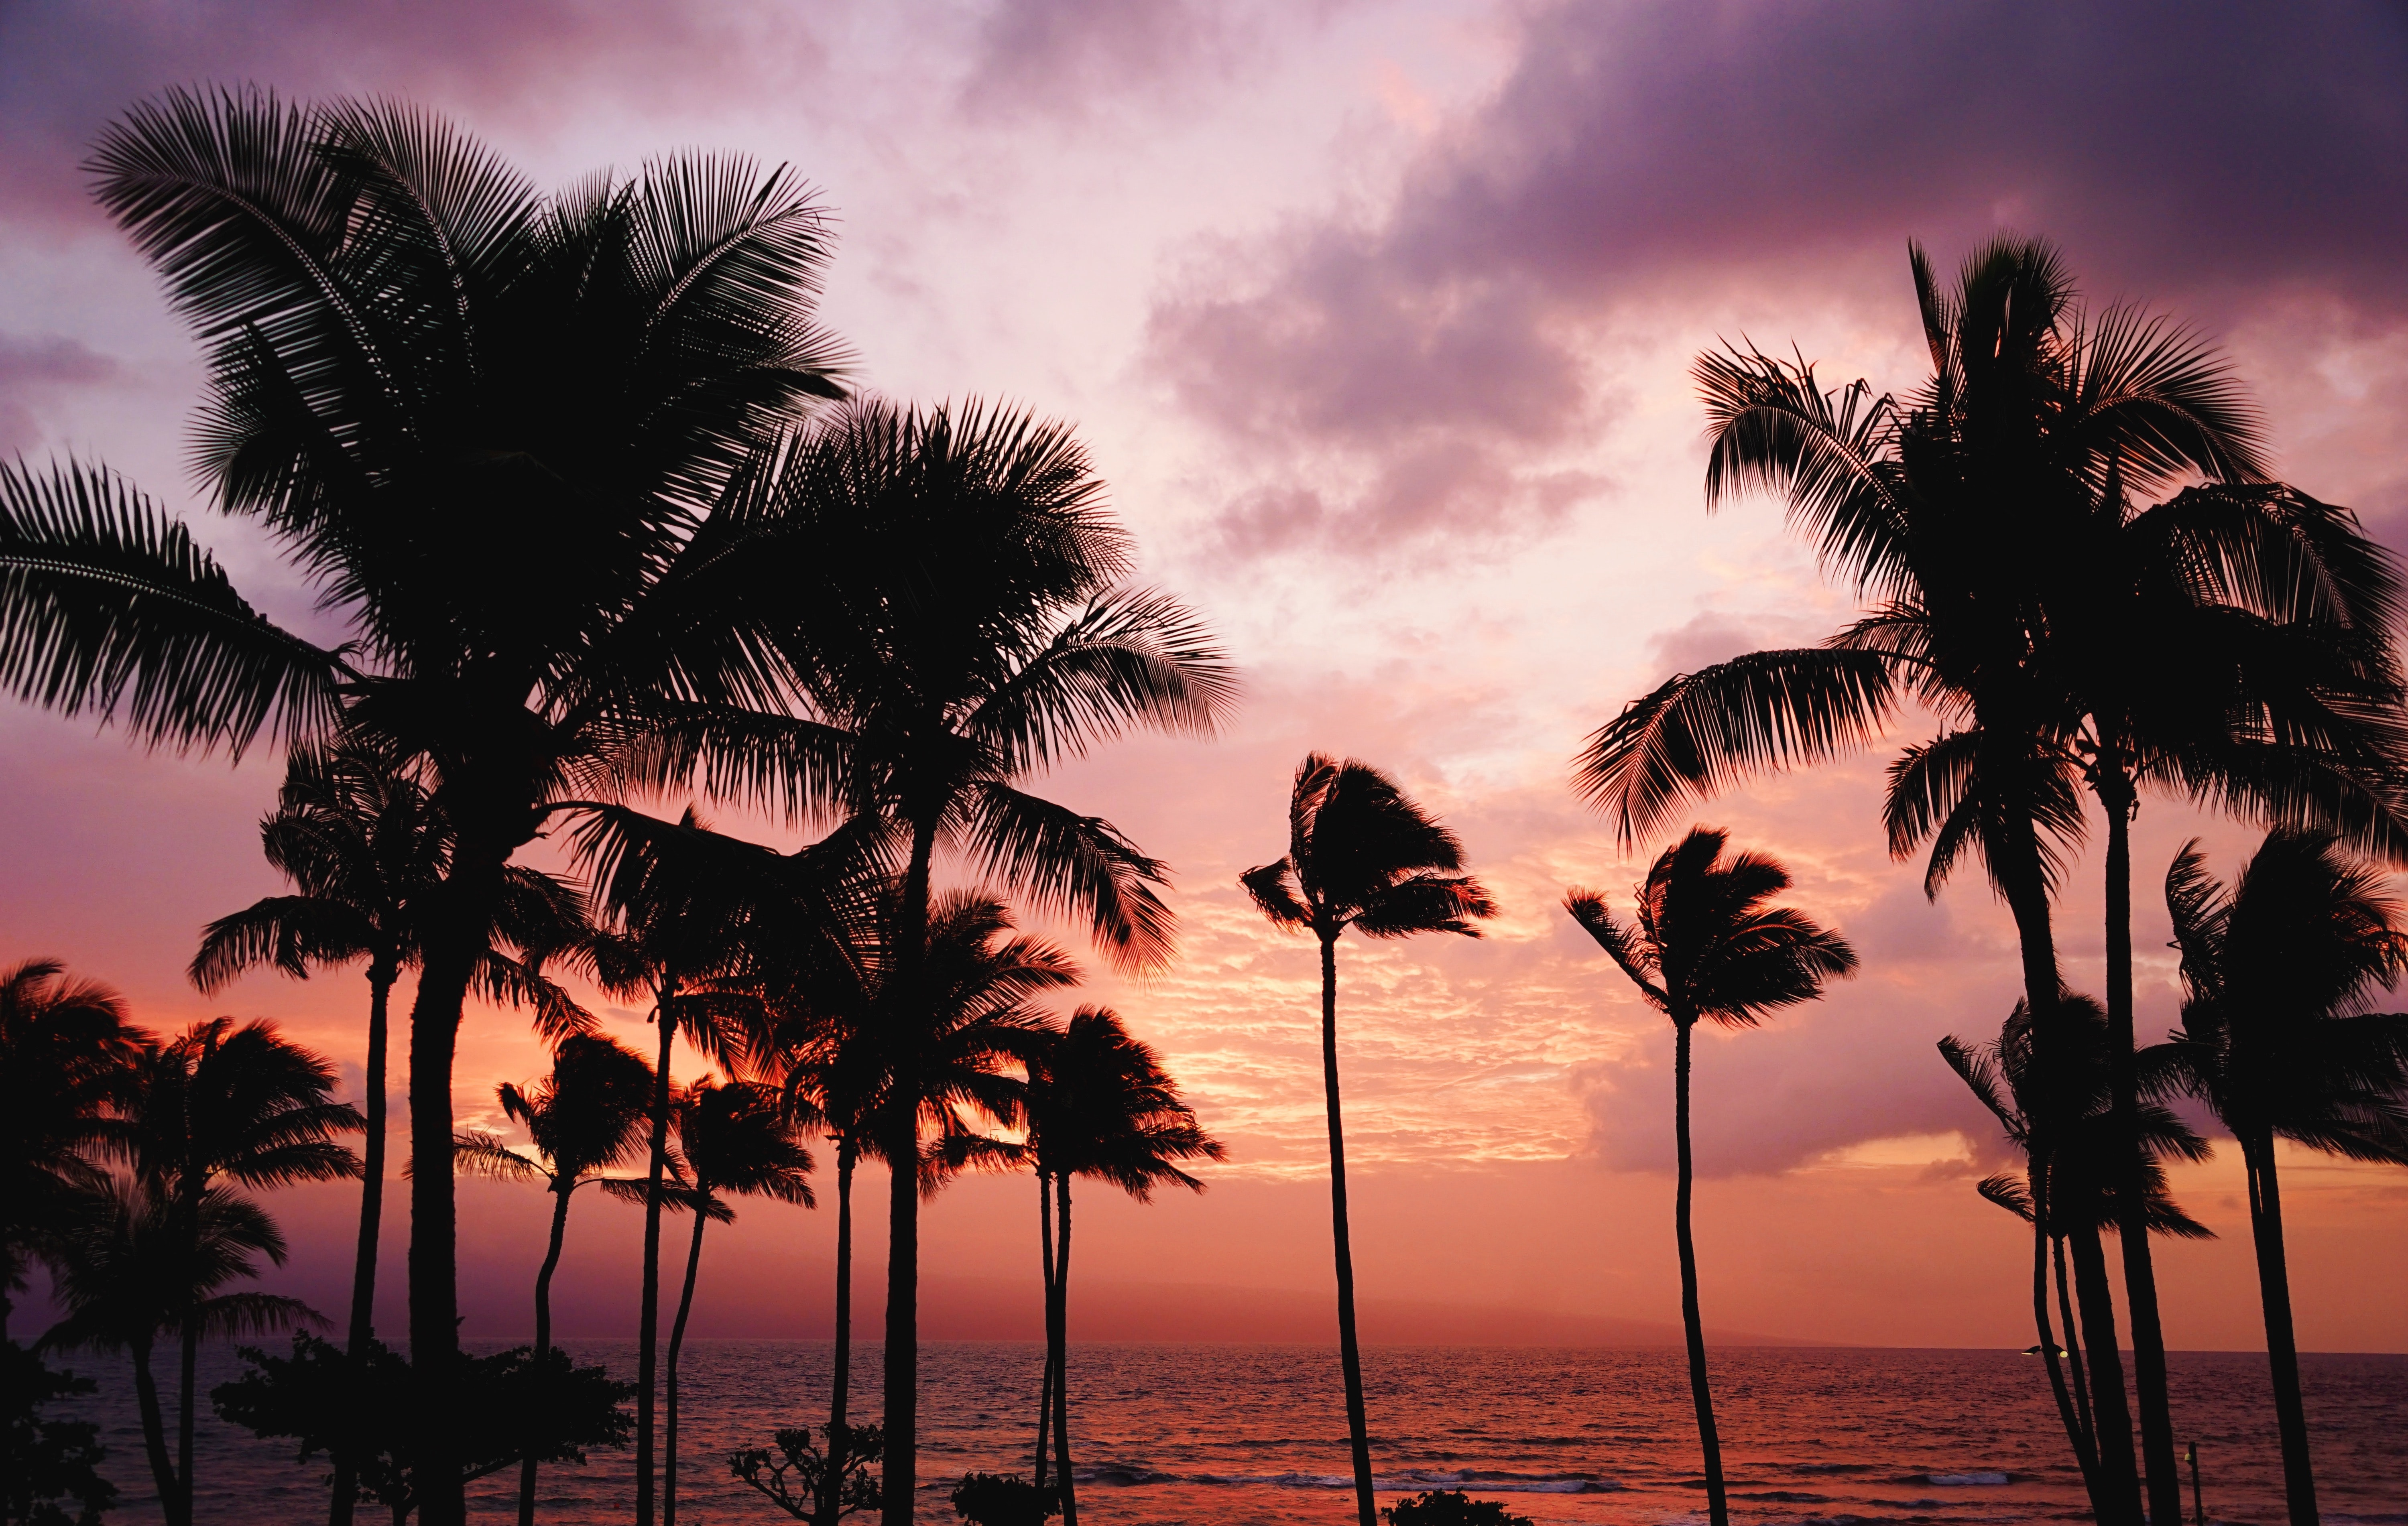 Palm trees swaying in the wind with a purple and orange sunset sky over the ocean in the distance, Maui County